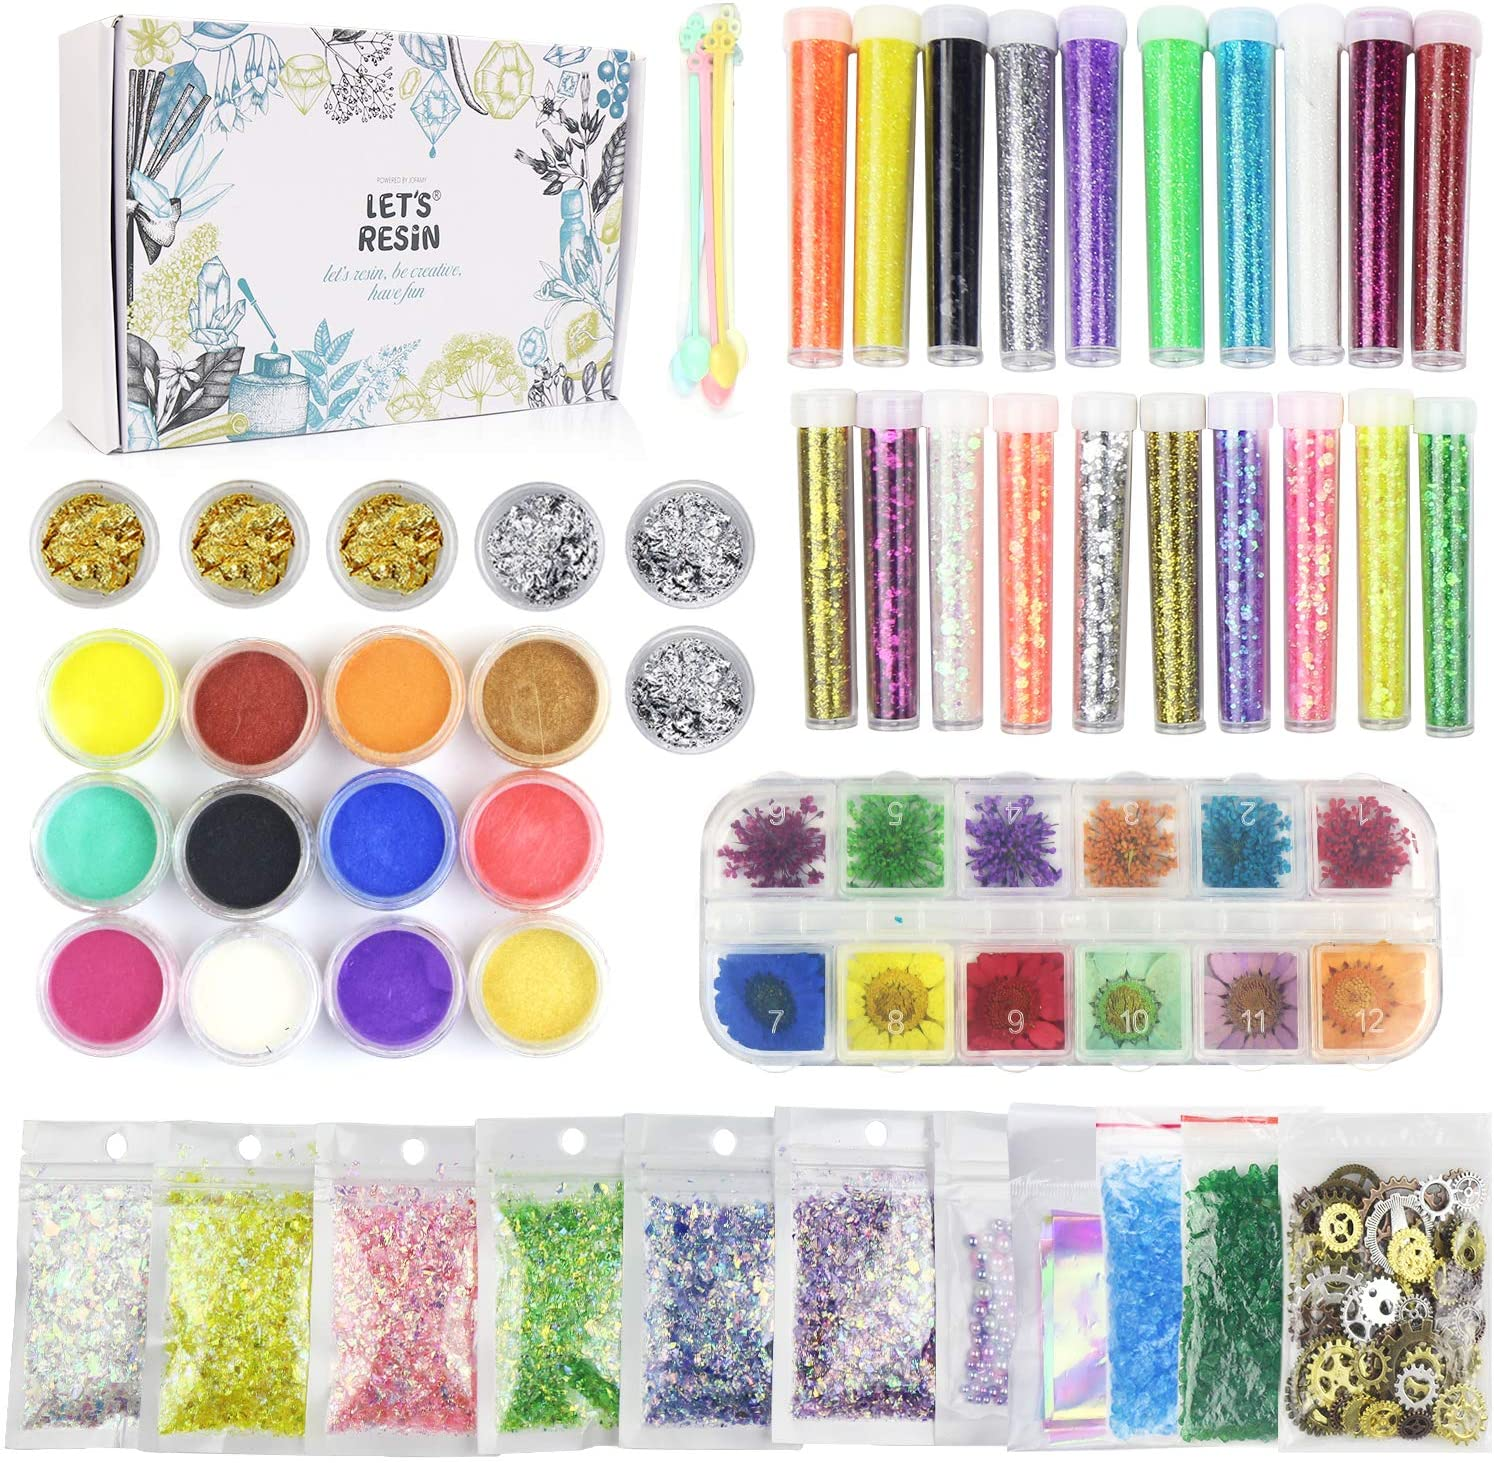 LET'S RESIN Resin Jewelry Making Supplies Kit,50 Pack Art ...